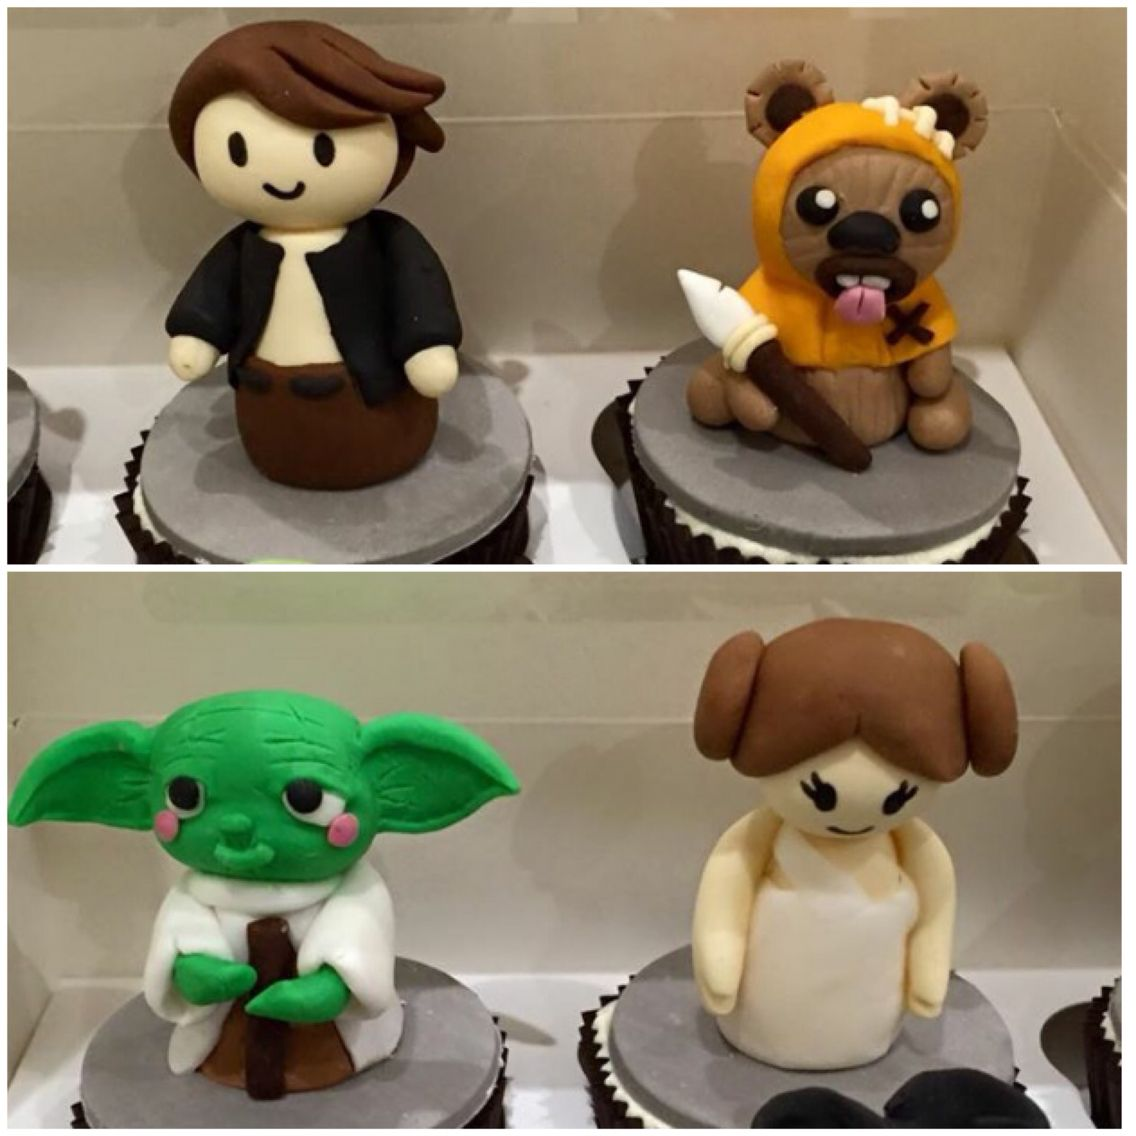 Edible star wars figurines with images star wars